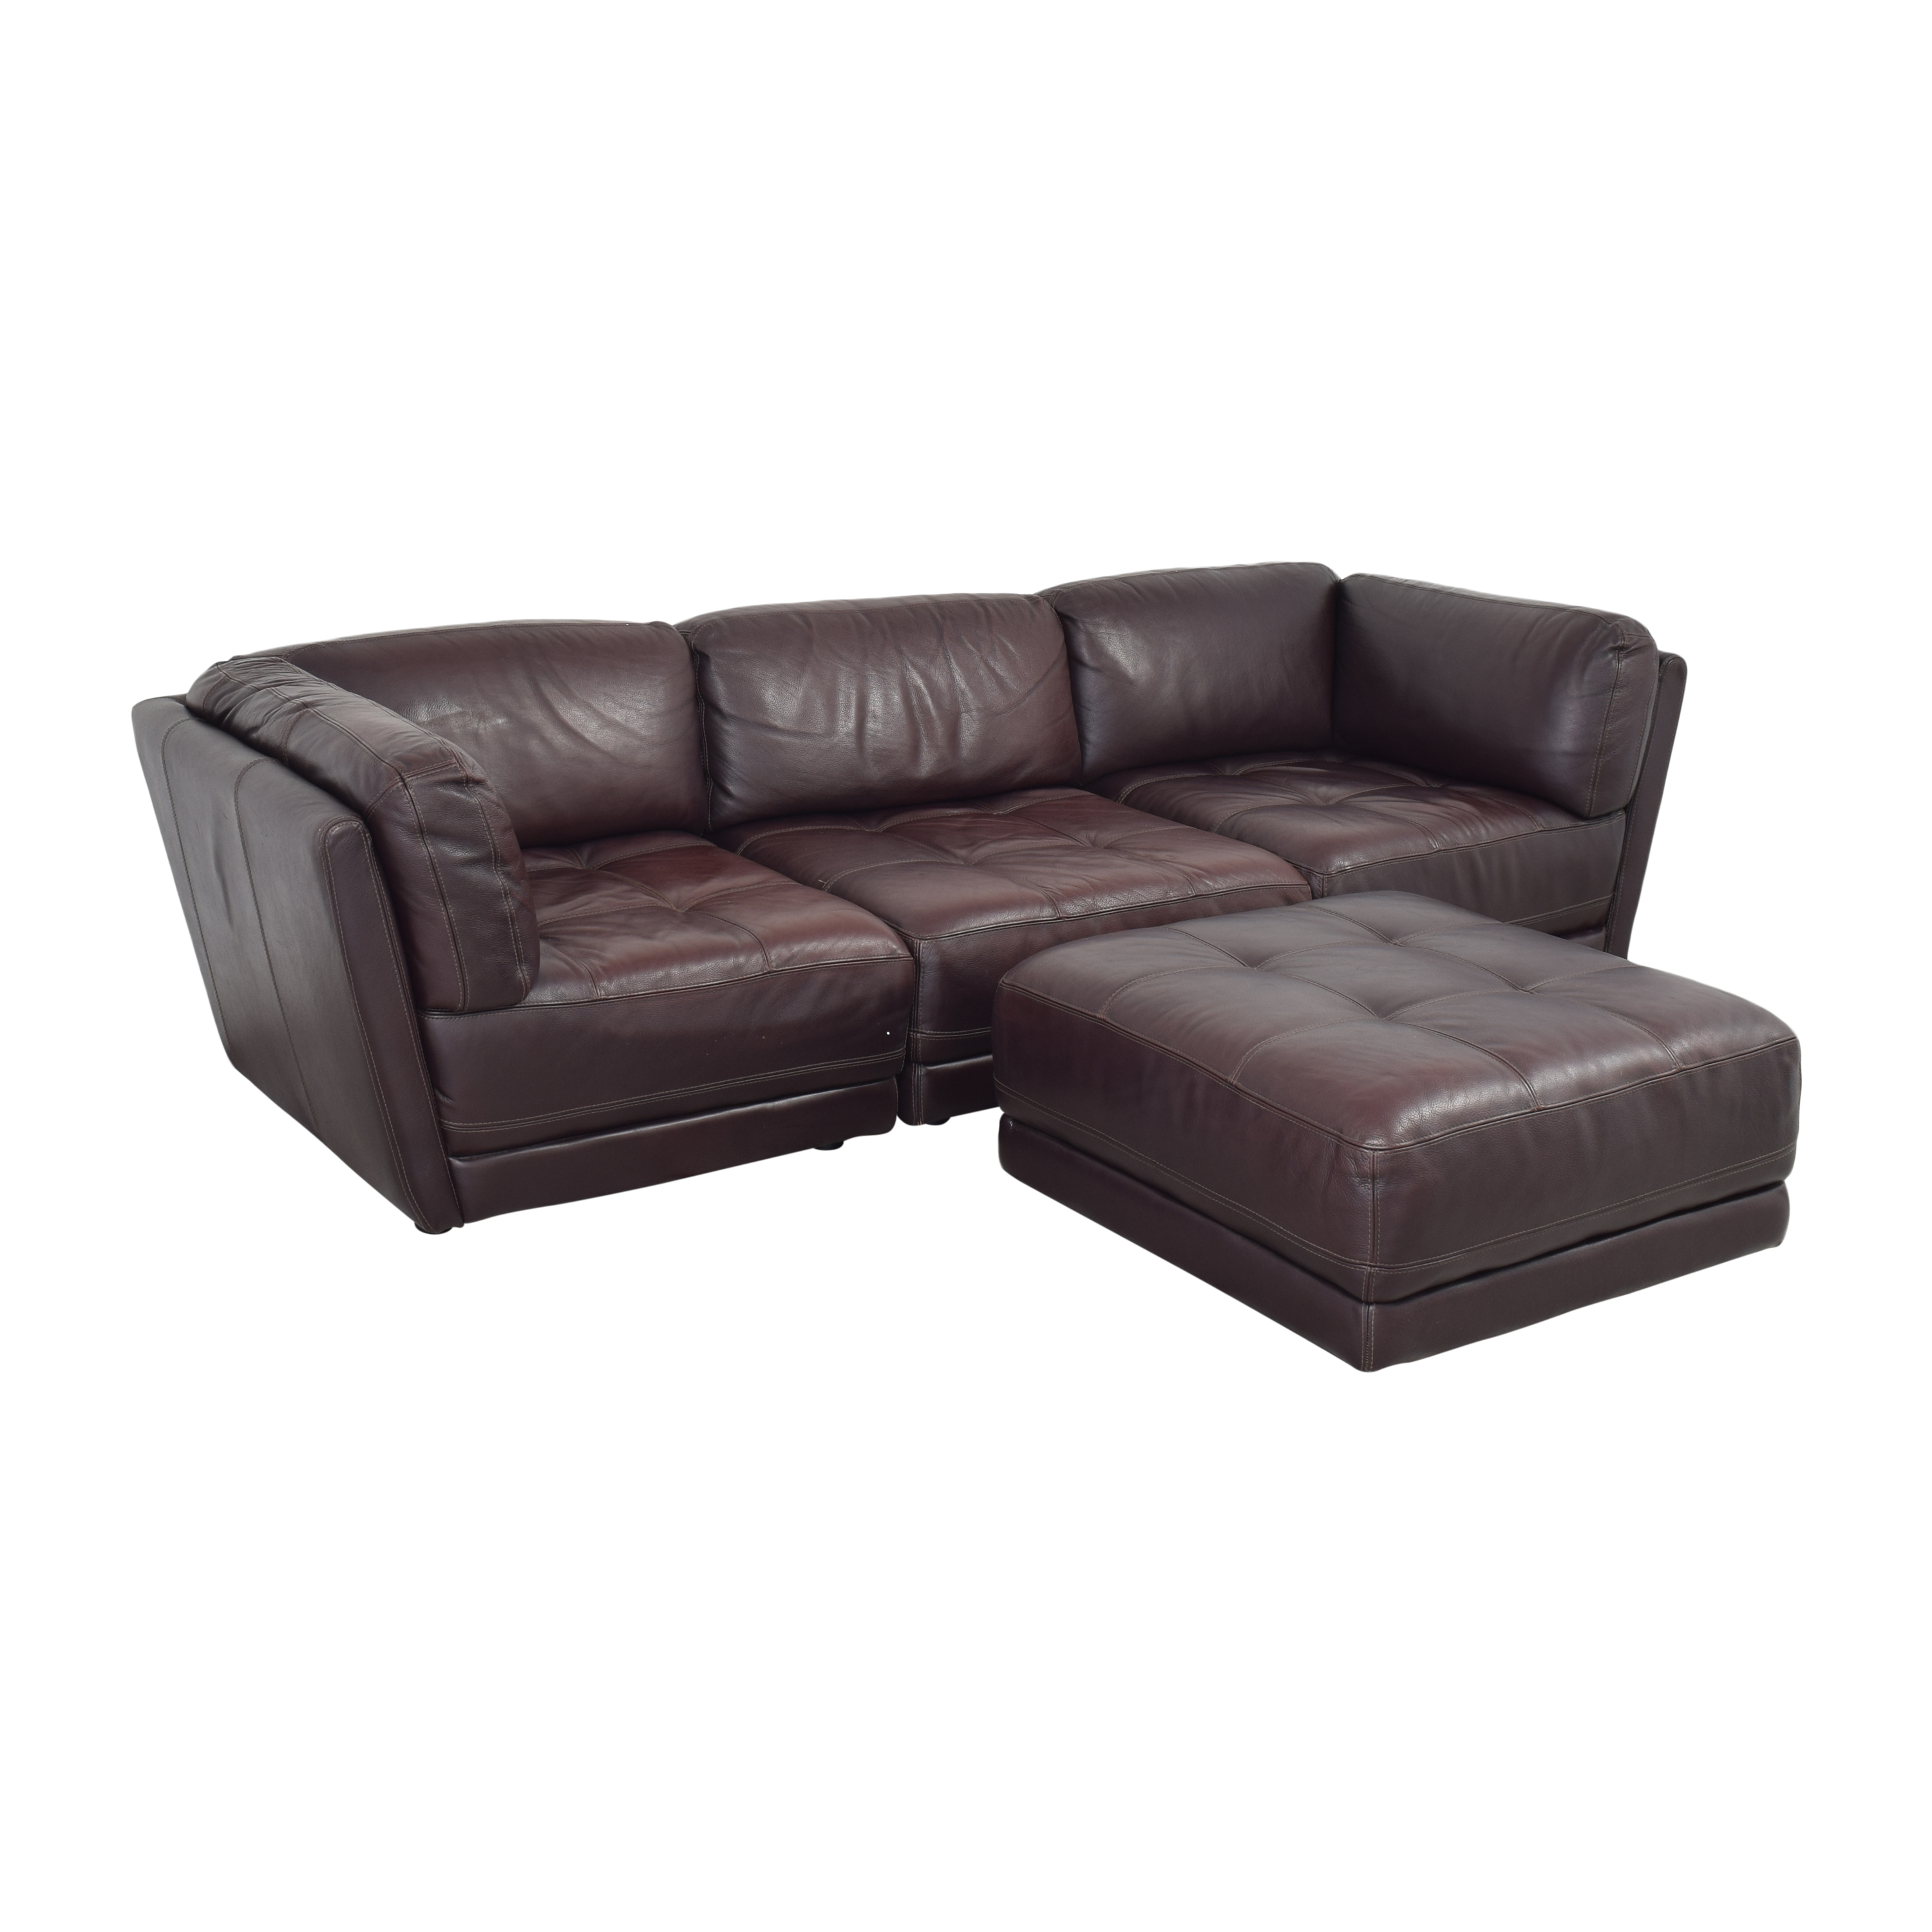 Raymour & Flanigan Raymour & Flanigan Tufted Sectional Sofa for sale